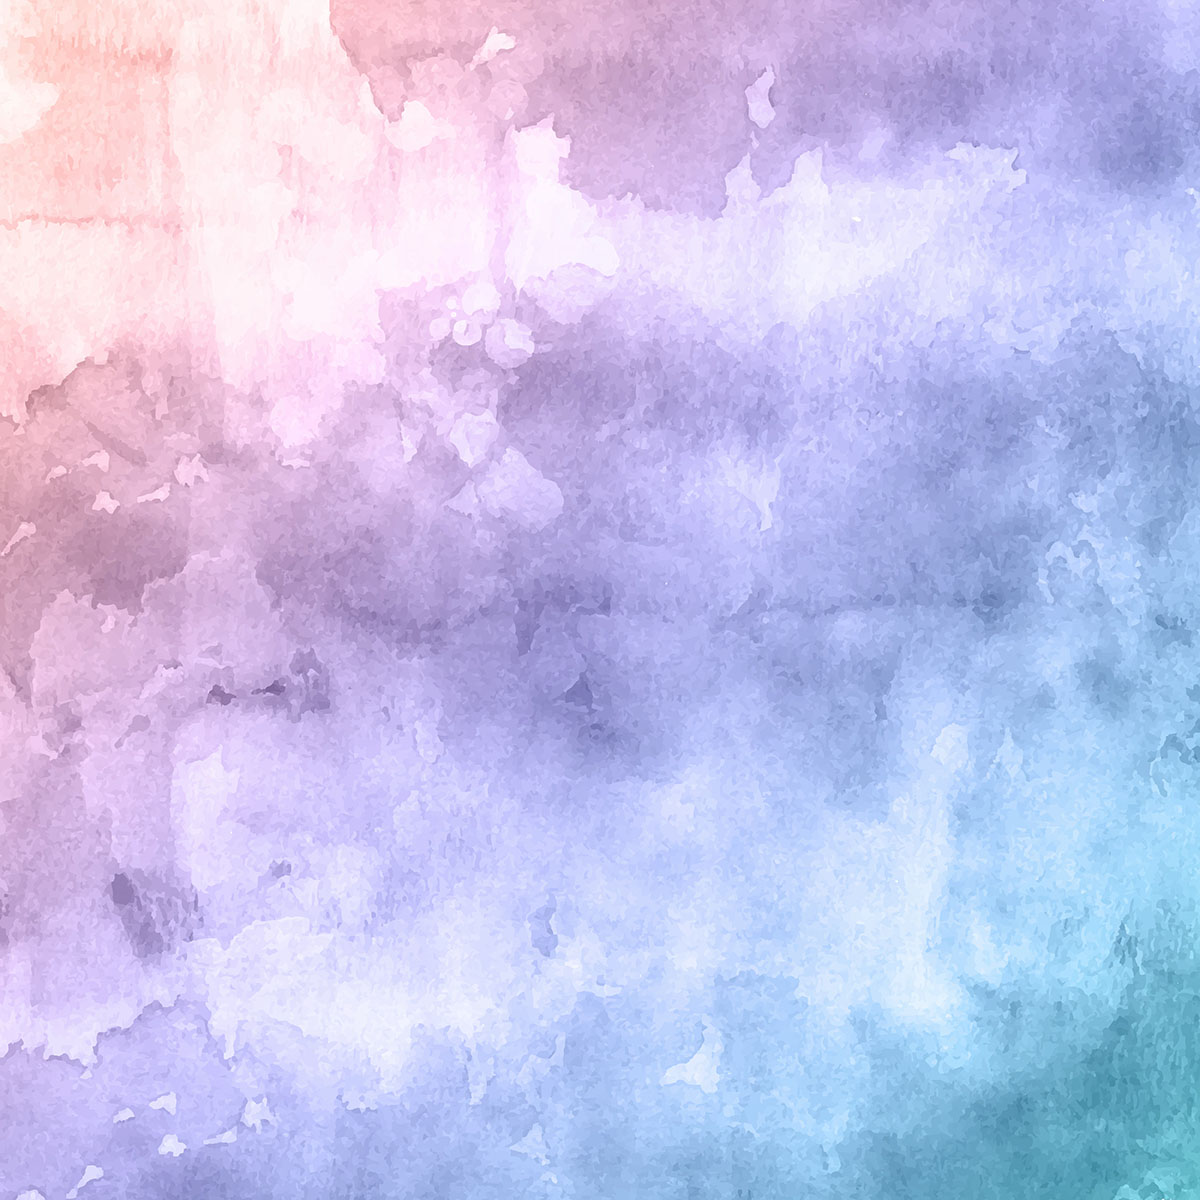 Watercolour texture background - Download Free Vector Art ...